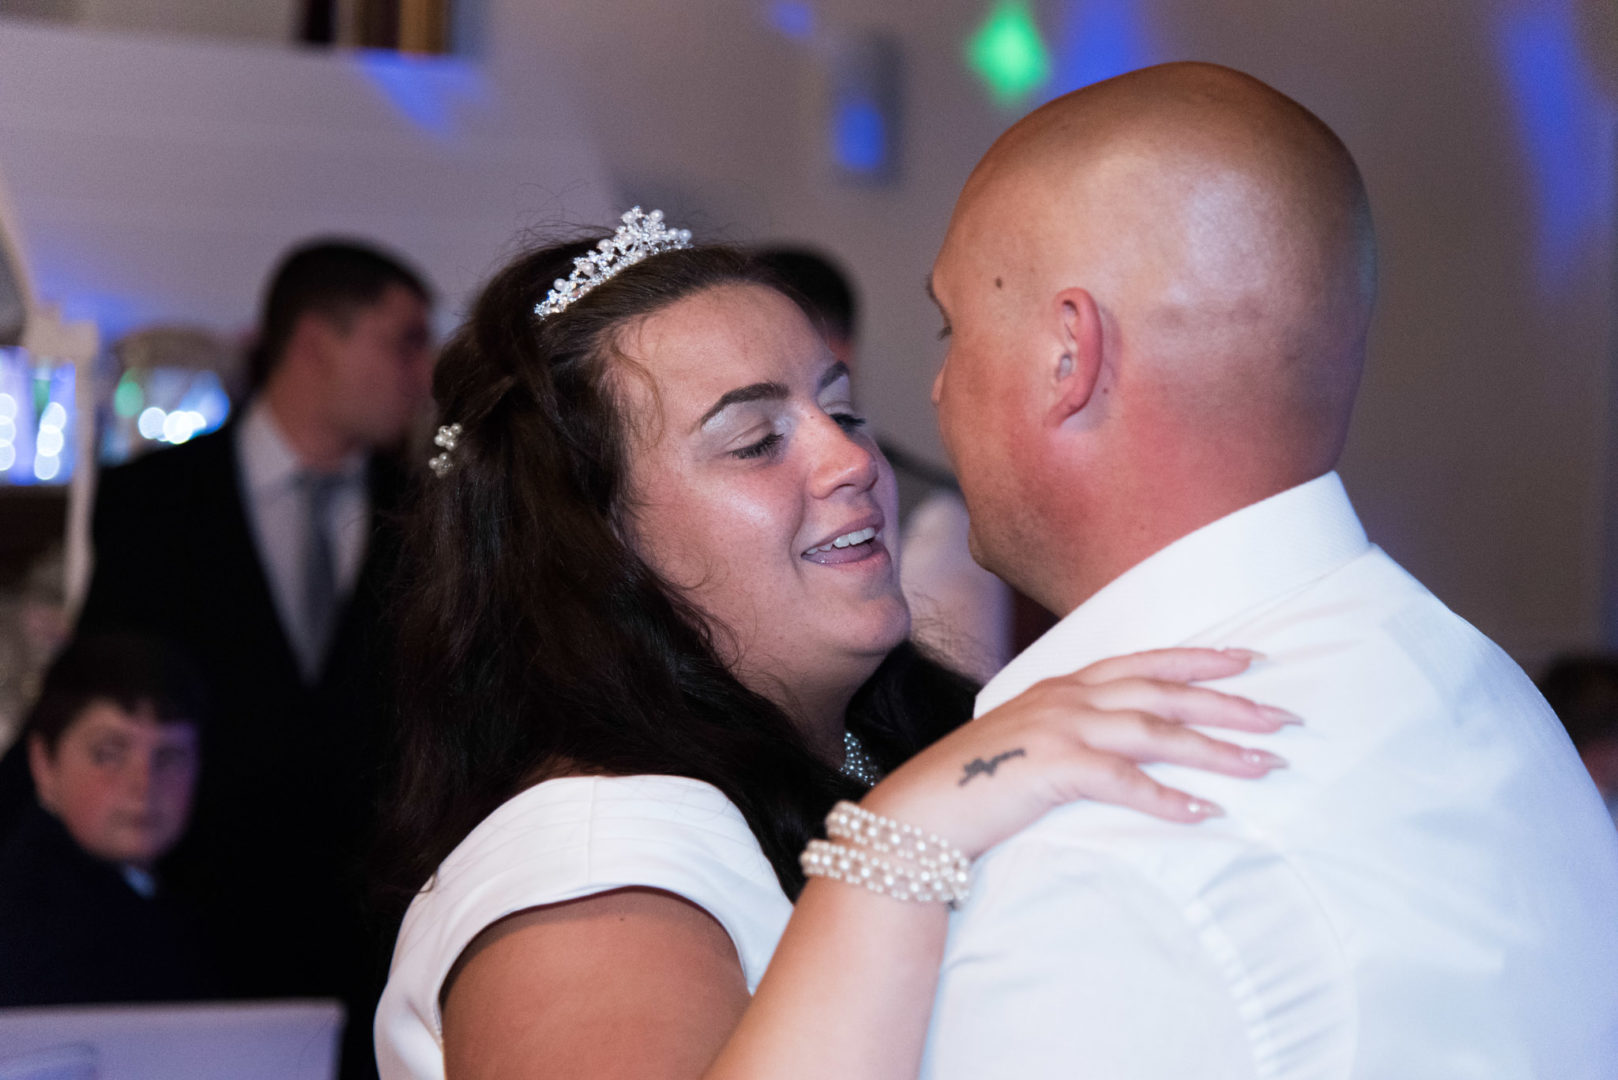 Warwickshire Wedding Photographer AJTImages at Solihull Municipal Club